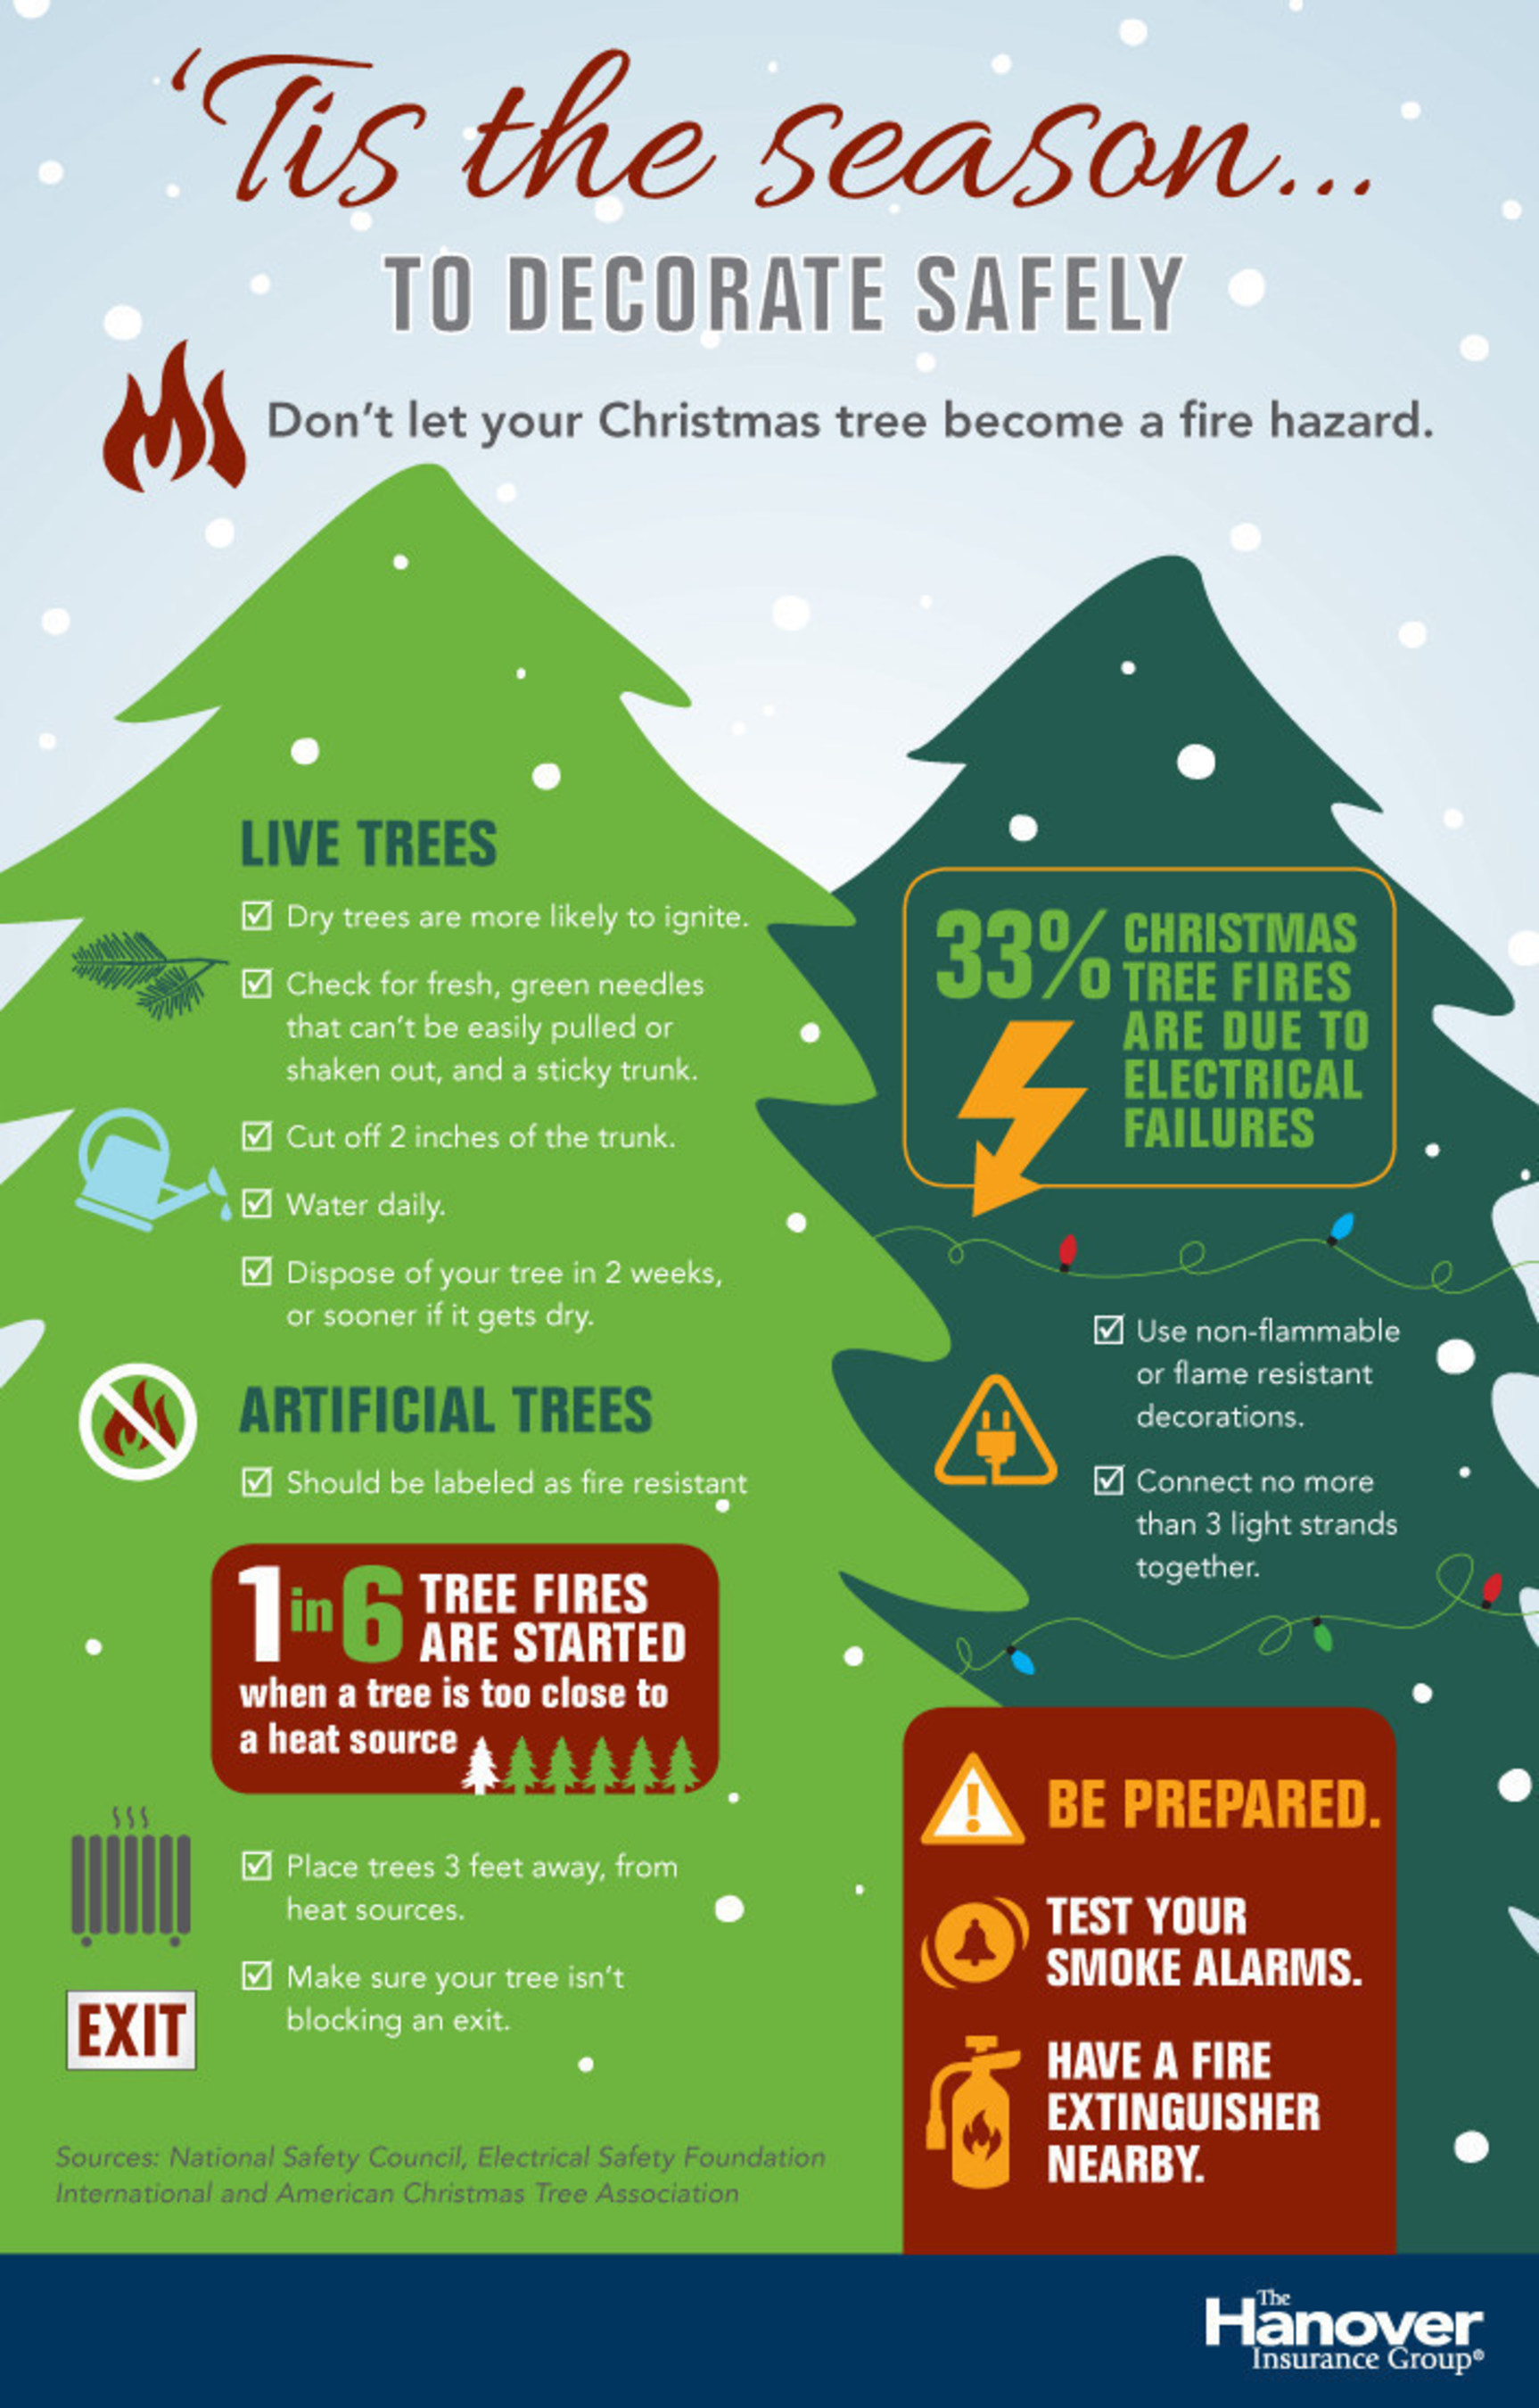 Don't let your Christmas tree become a fire hazard. Tips to decorate safely from The Hanover Insurance ...